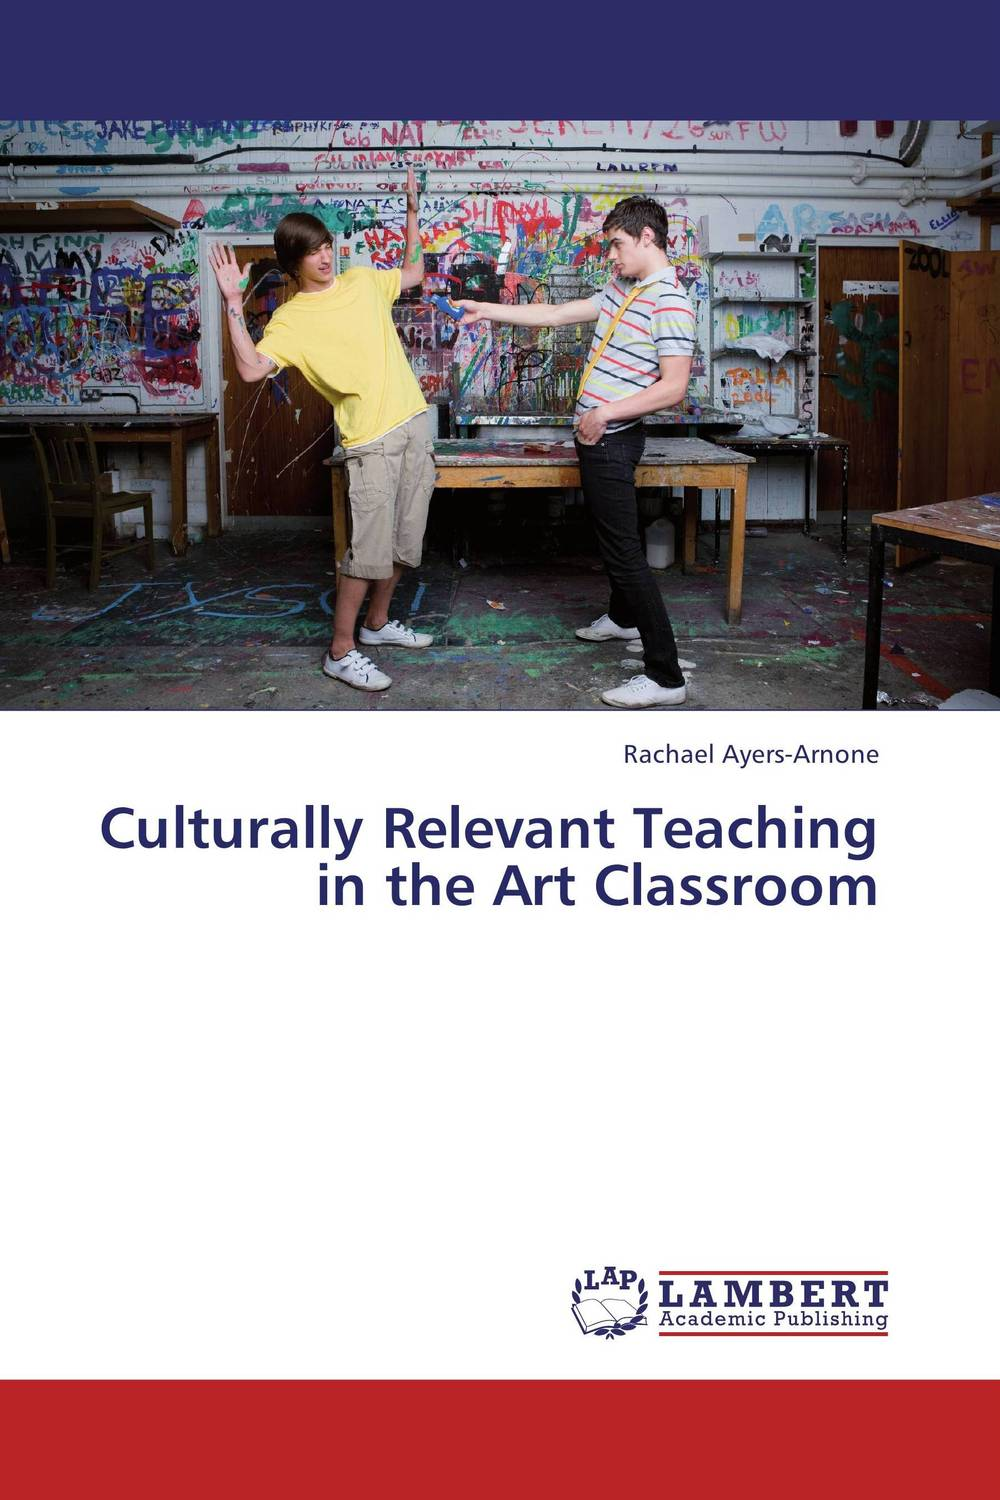 Culturally Relevant Teaching in the Art Classroom